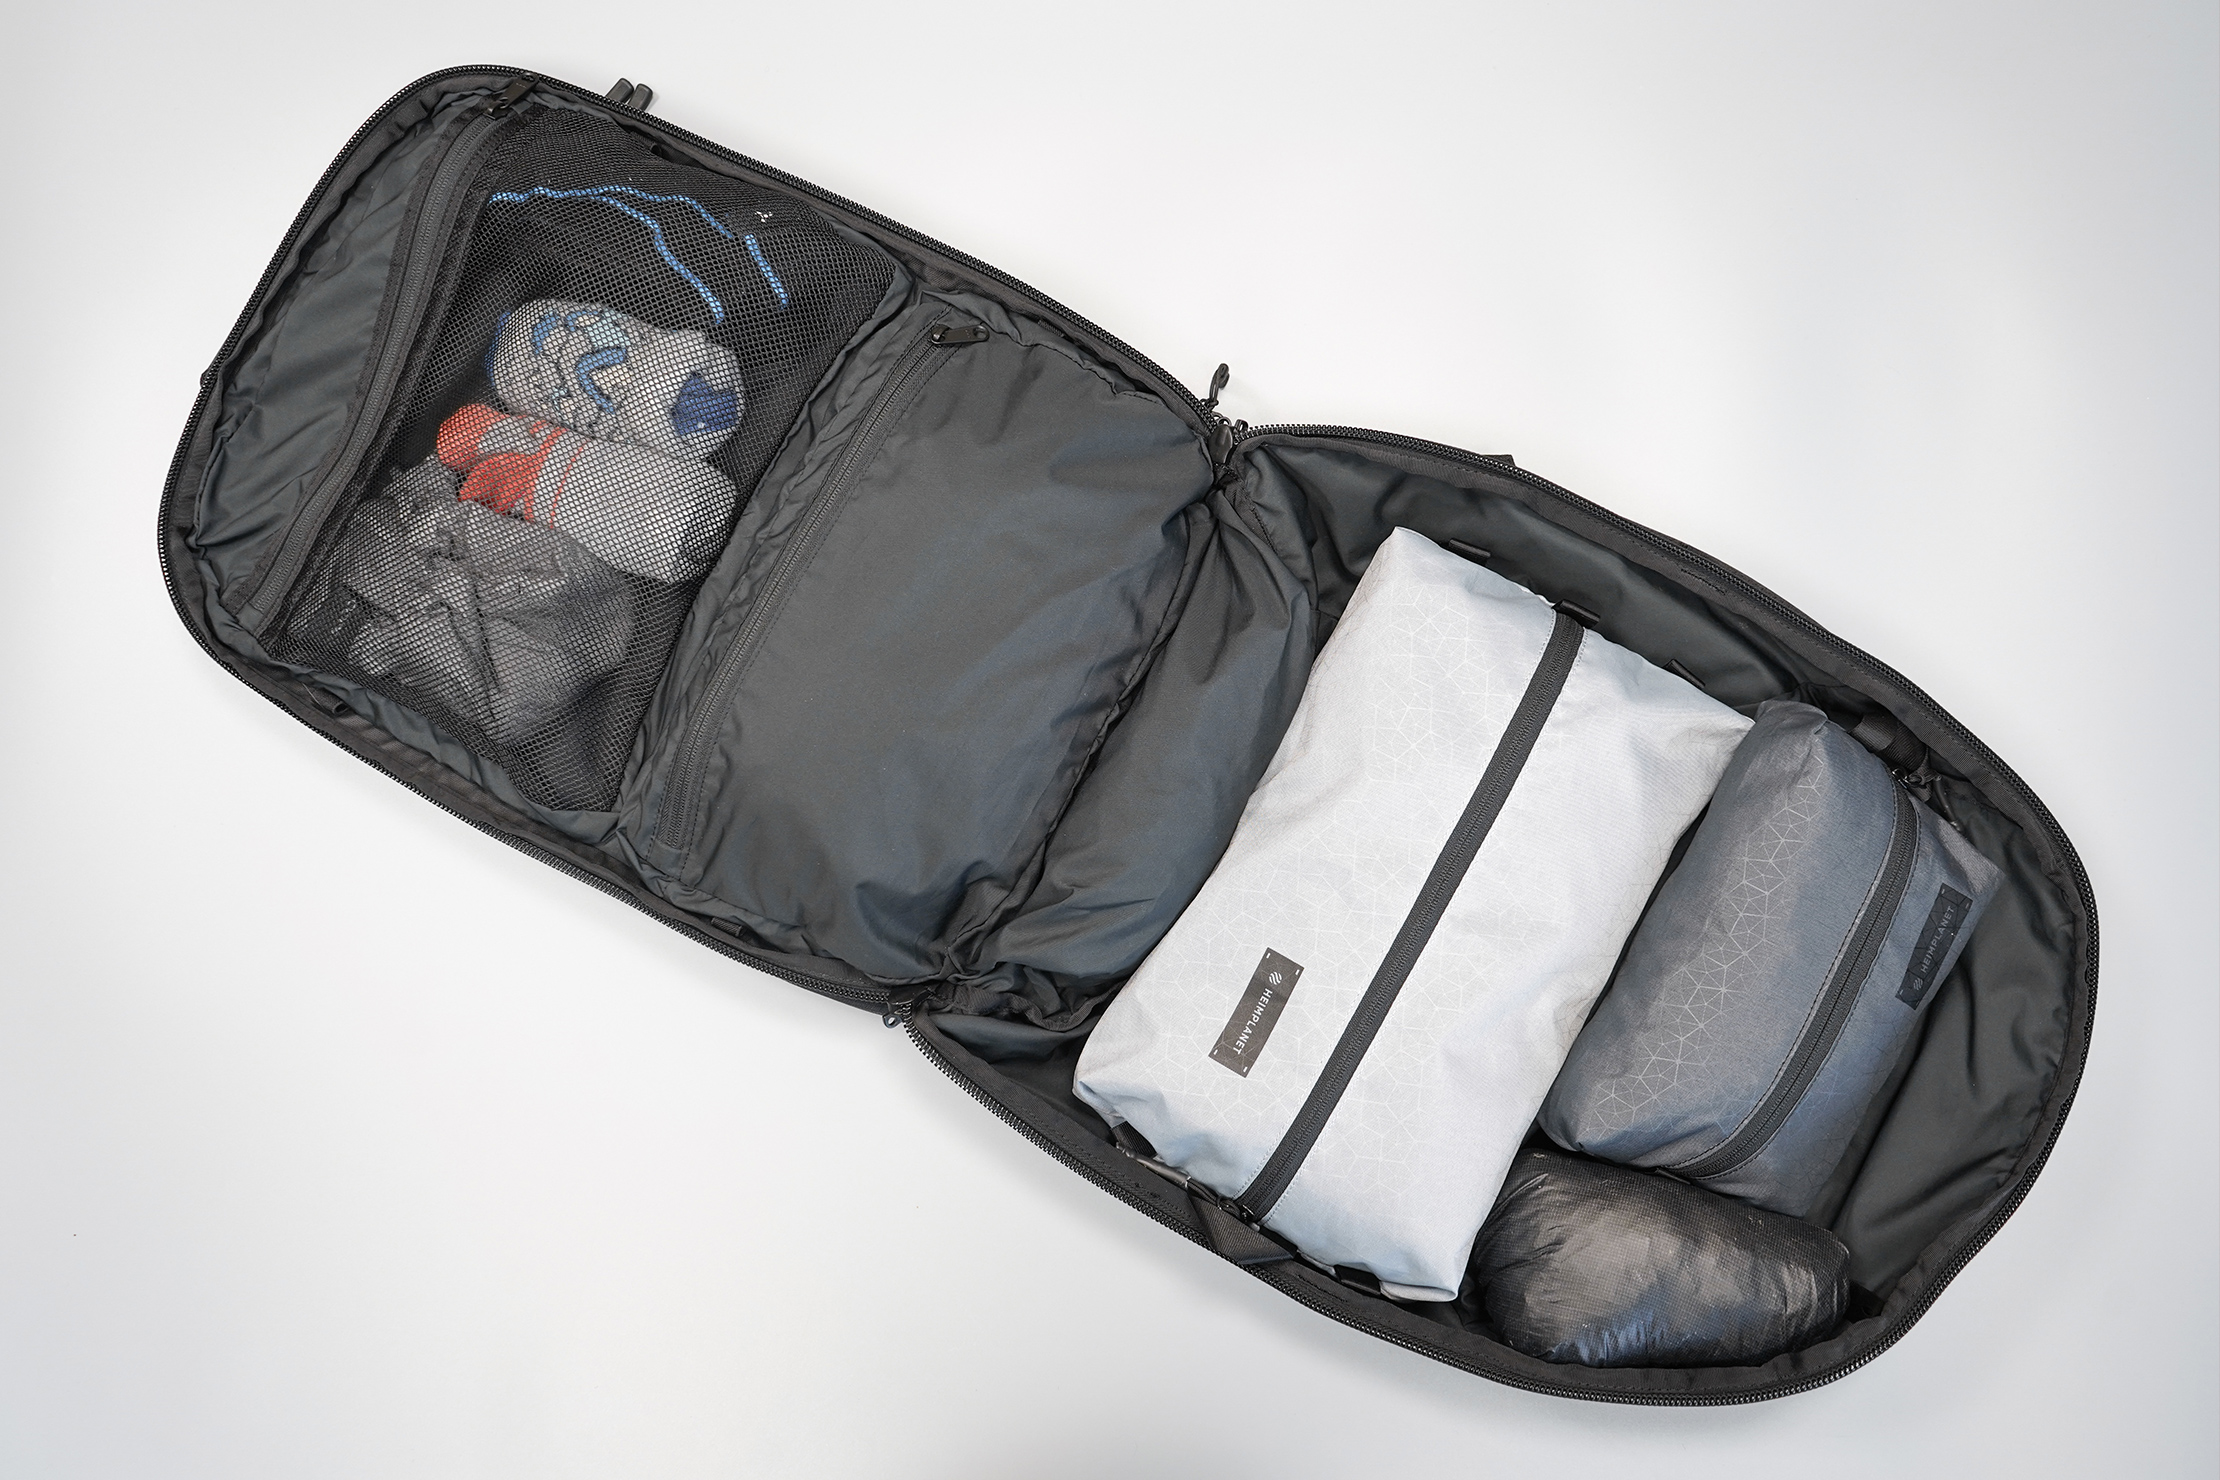 Minaal Carry-On 3.0 | Clamshell-style opening makes scooping up clothes easy